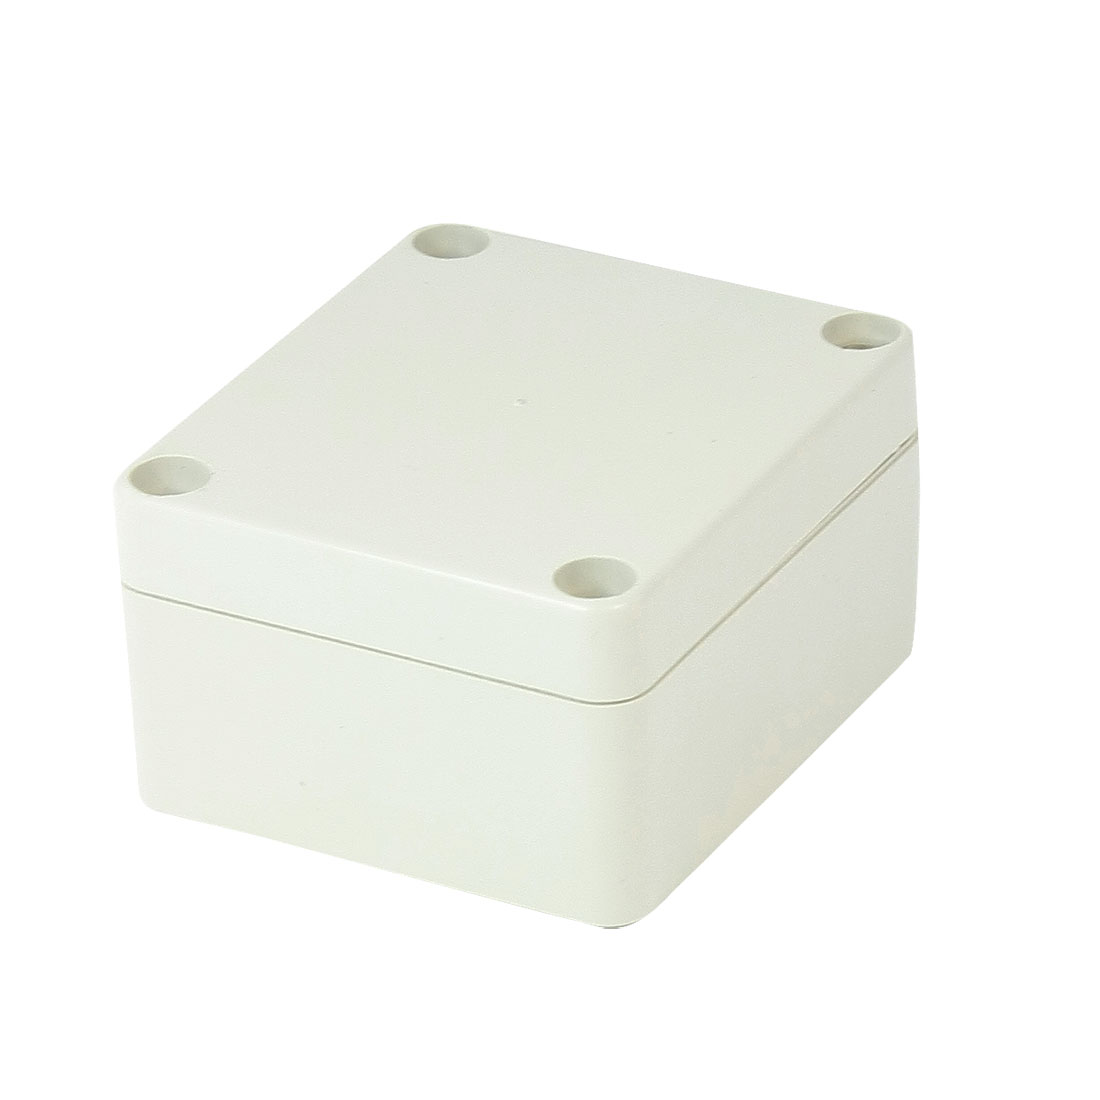 65mm x 58mm x 35mm Waterproof Plastic Enclosure Case DIY Junction Box